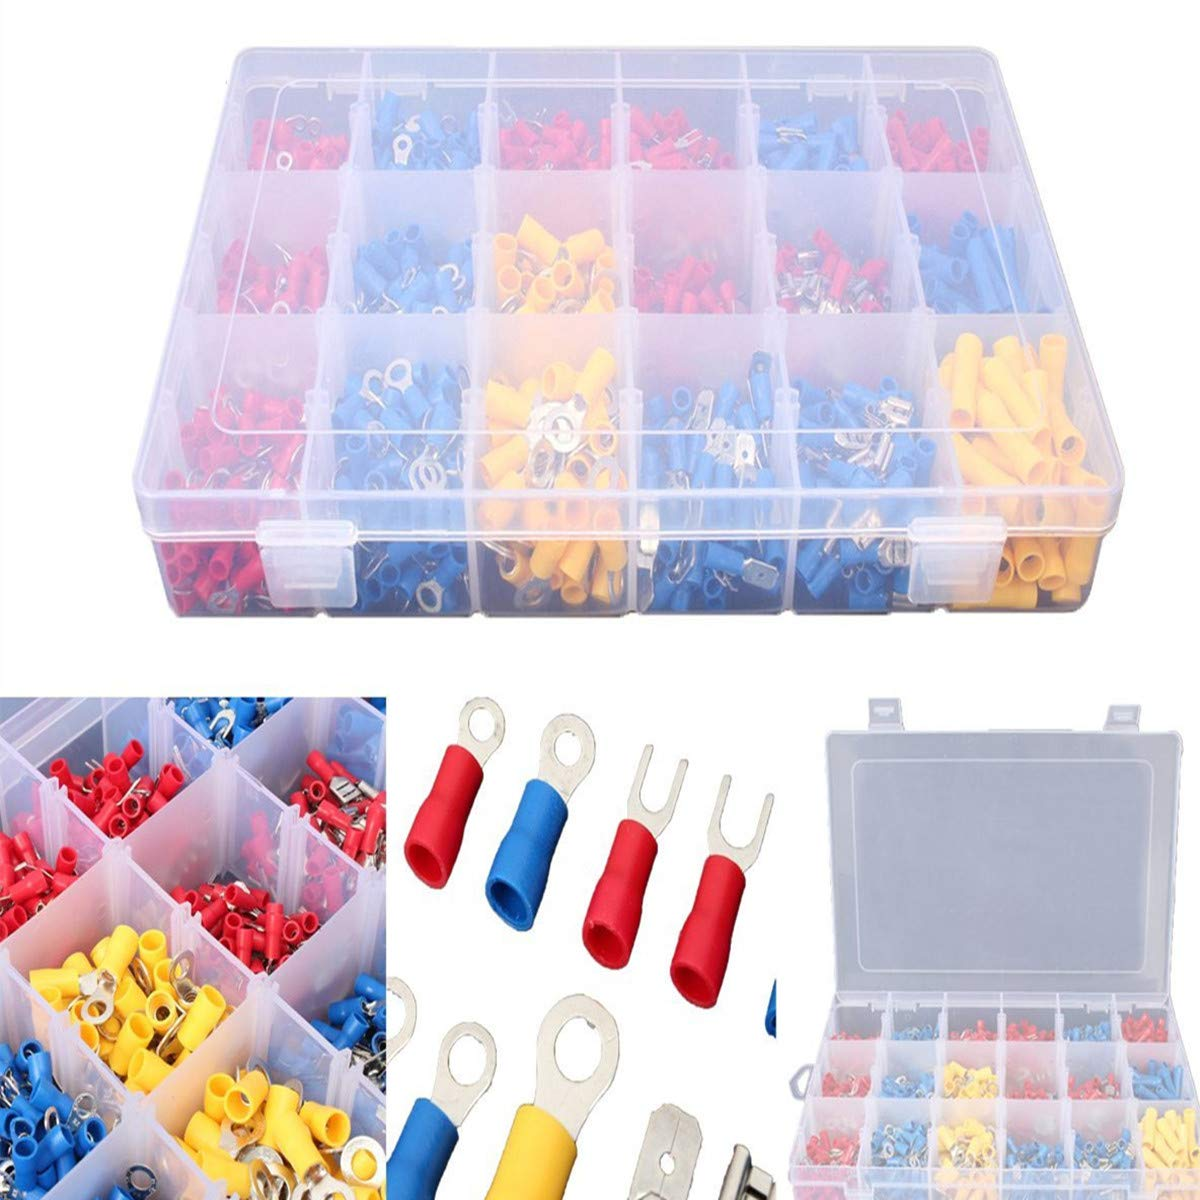 1200PCS Insulated Wiring Terminals Wire Connectors Kit Electrical Crimp Terminals Automotive Terminals Set by INSMA